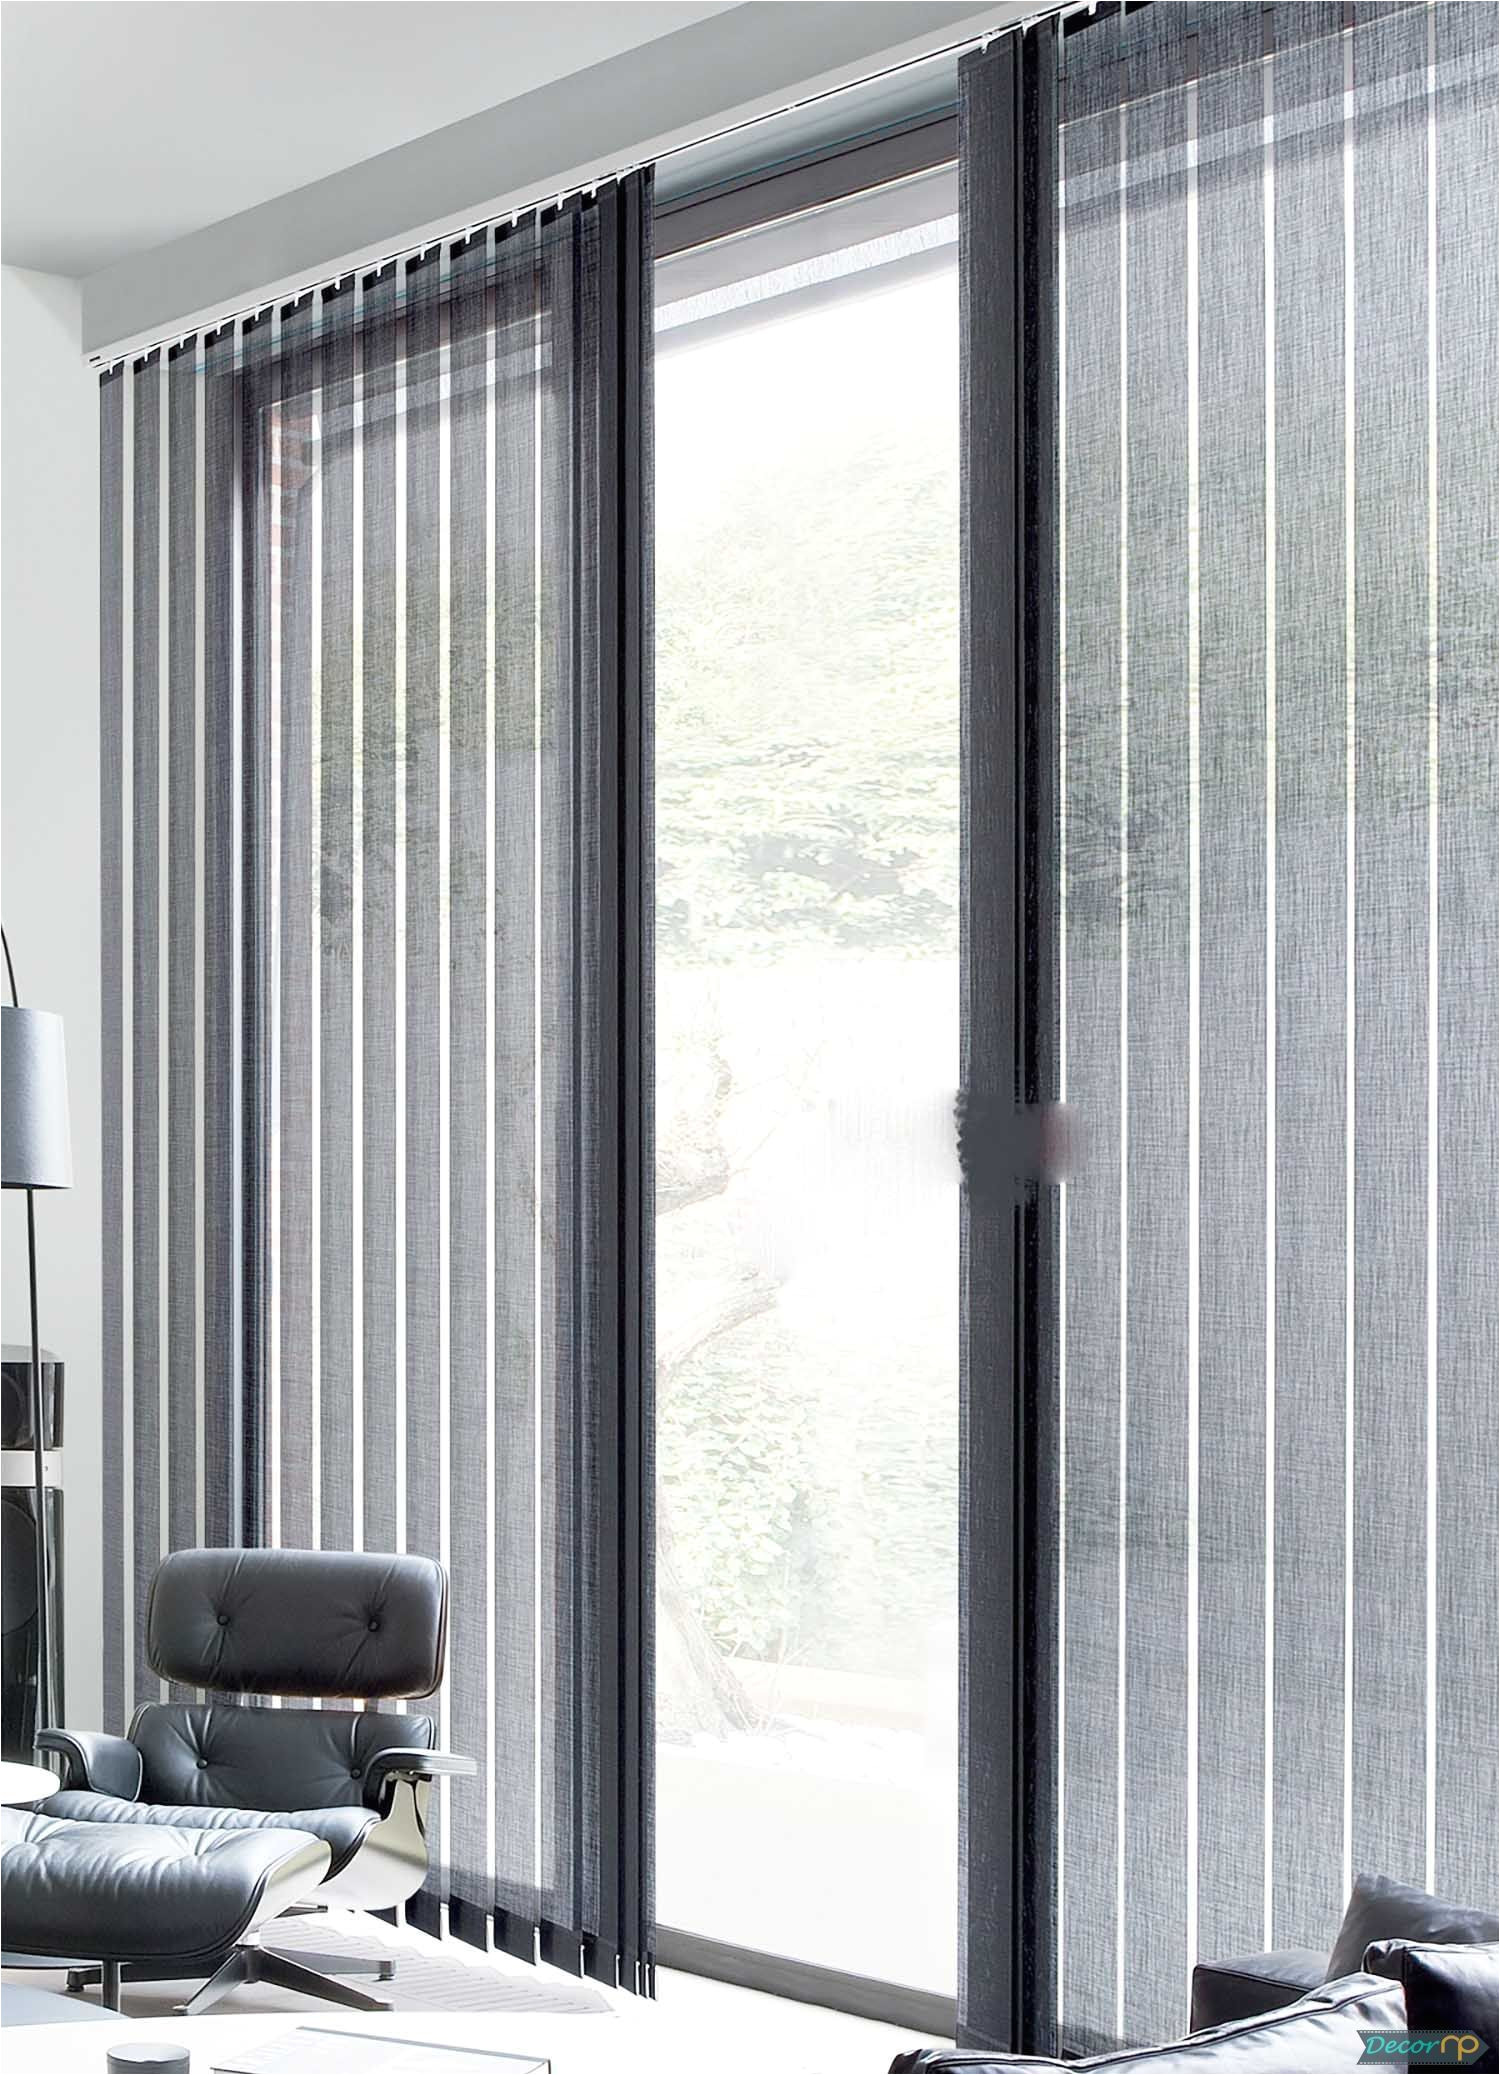 15 vertical modern blinds style in 2018 blinds2018 verticalblindscover verticalblindscolor